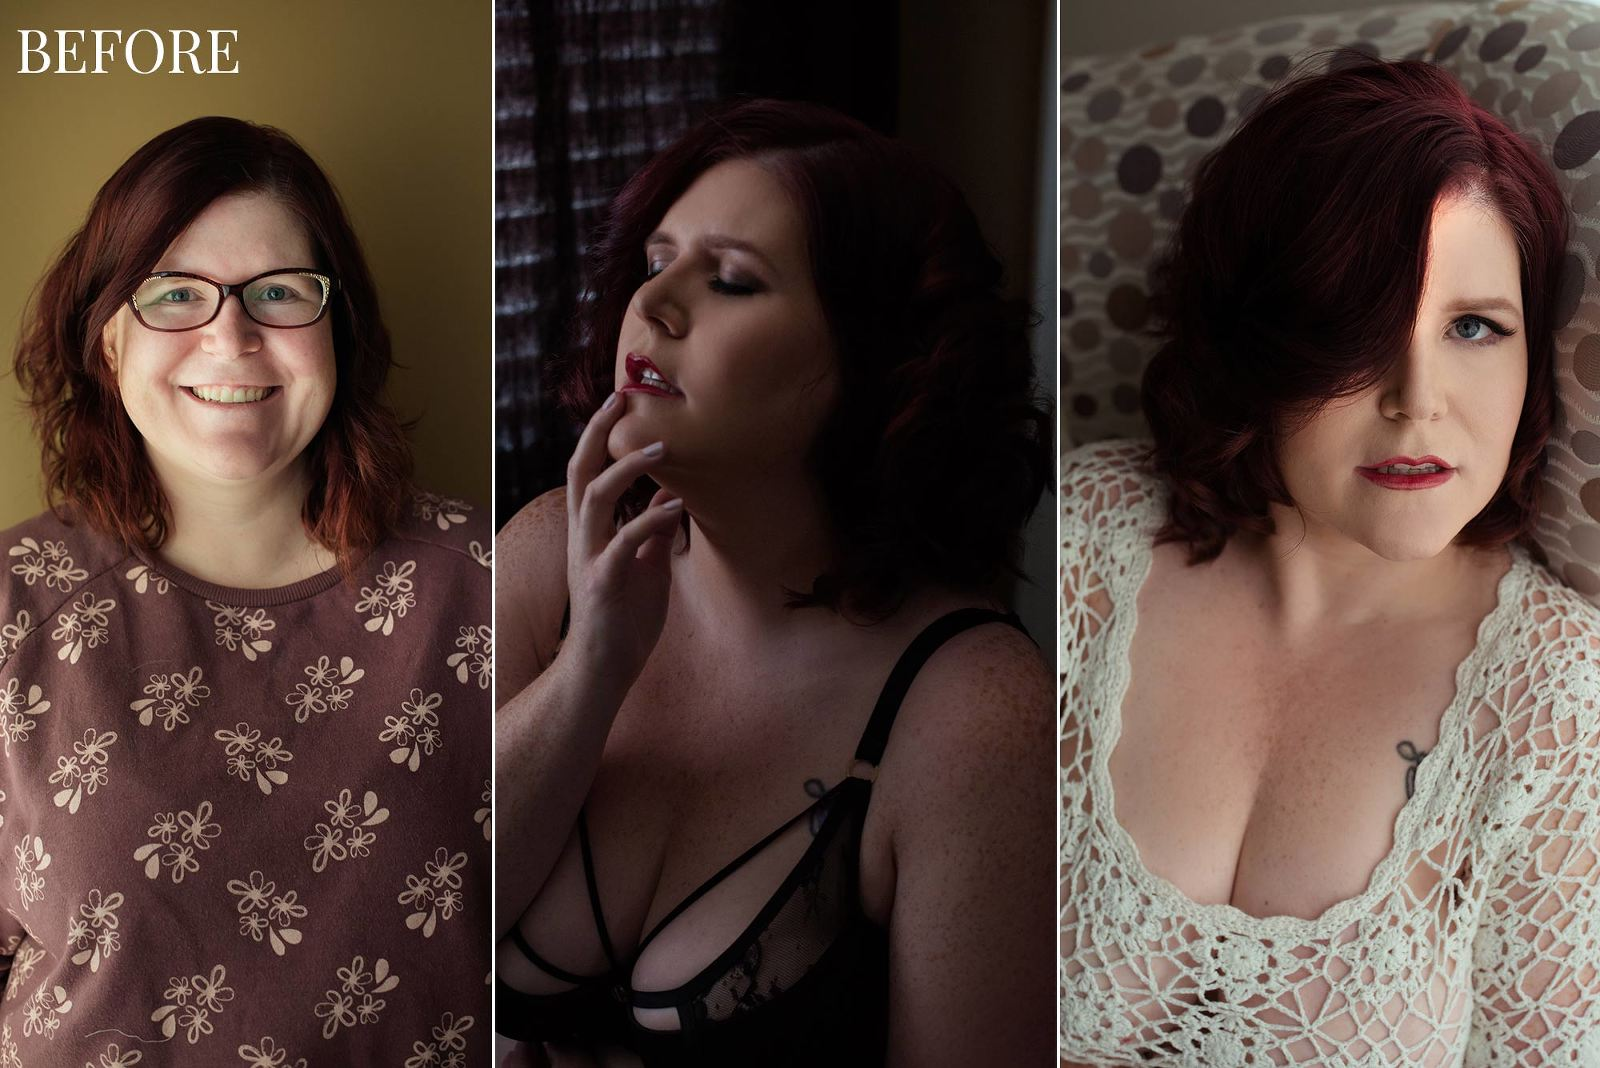 Plus size boudoir photographer, Curvy boudoir photo, Curvy boudoir photo session, Plus size intimate photos, Plus size boudoir photos, Claudia T Photography